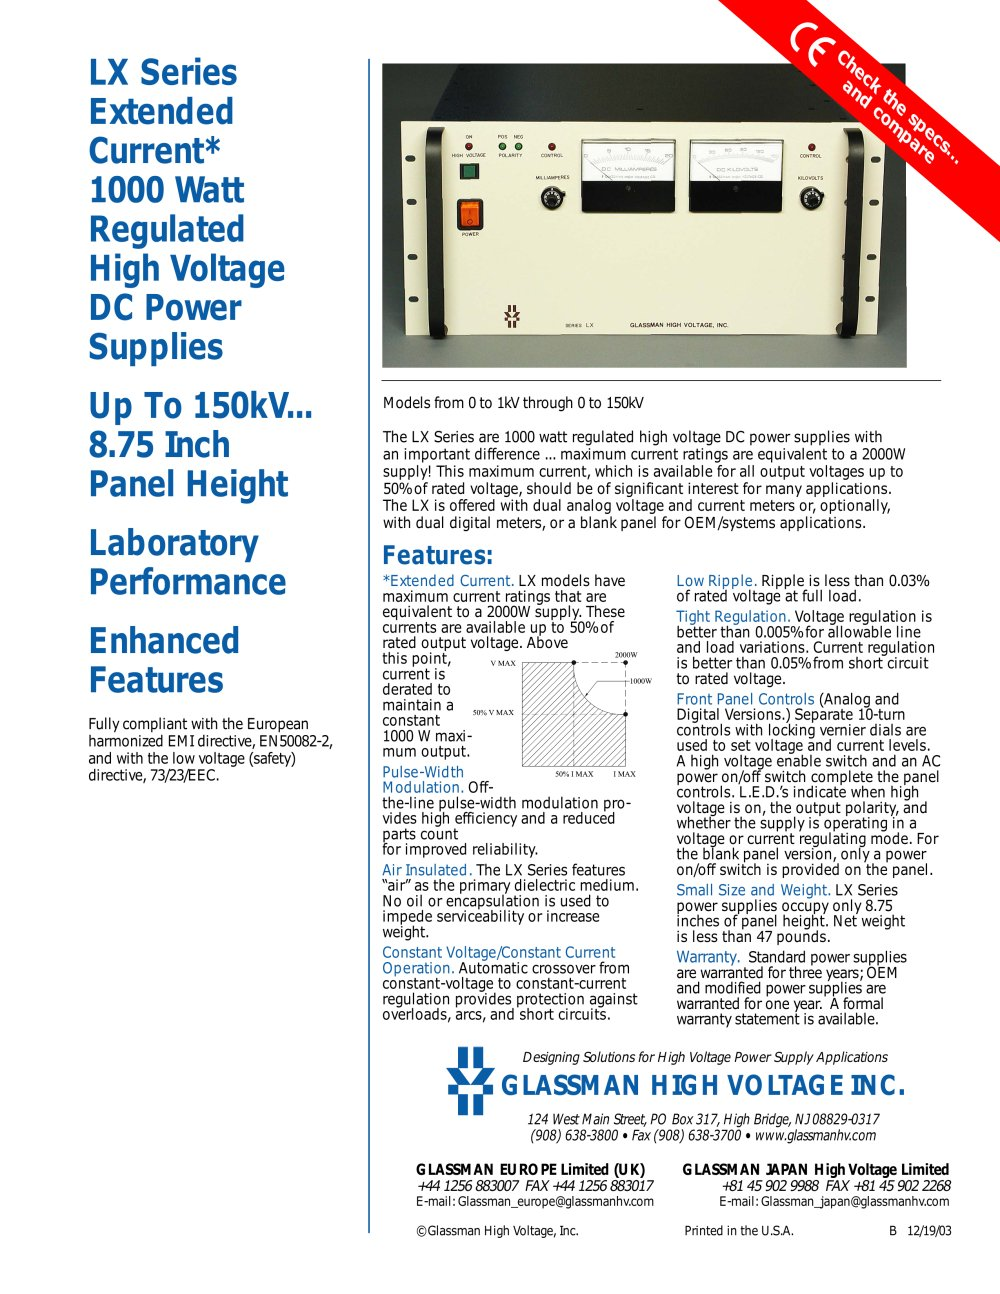 Lx Series Extended Current 1000 Watt Regulated High Voltage Dc Power Supply Supplies 1 2 Pages